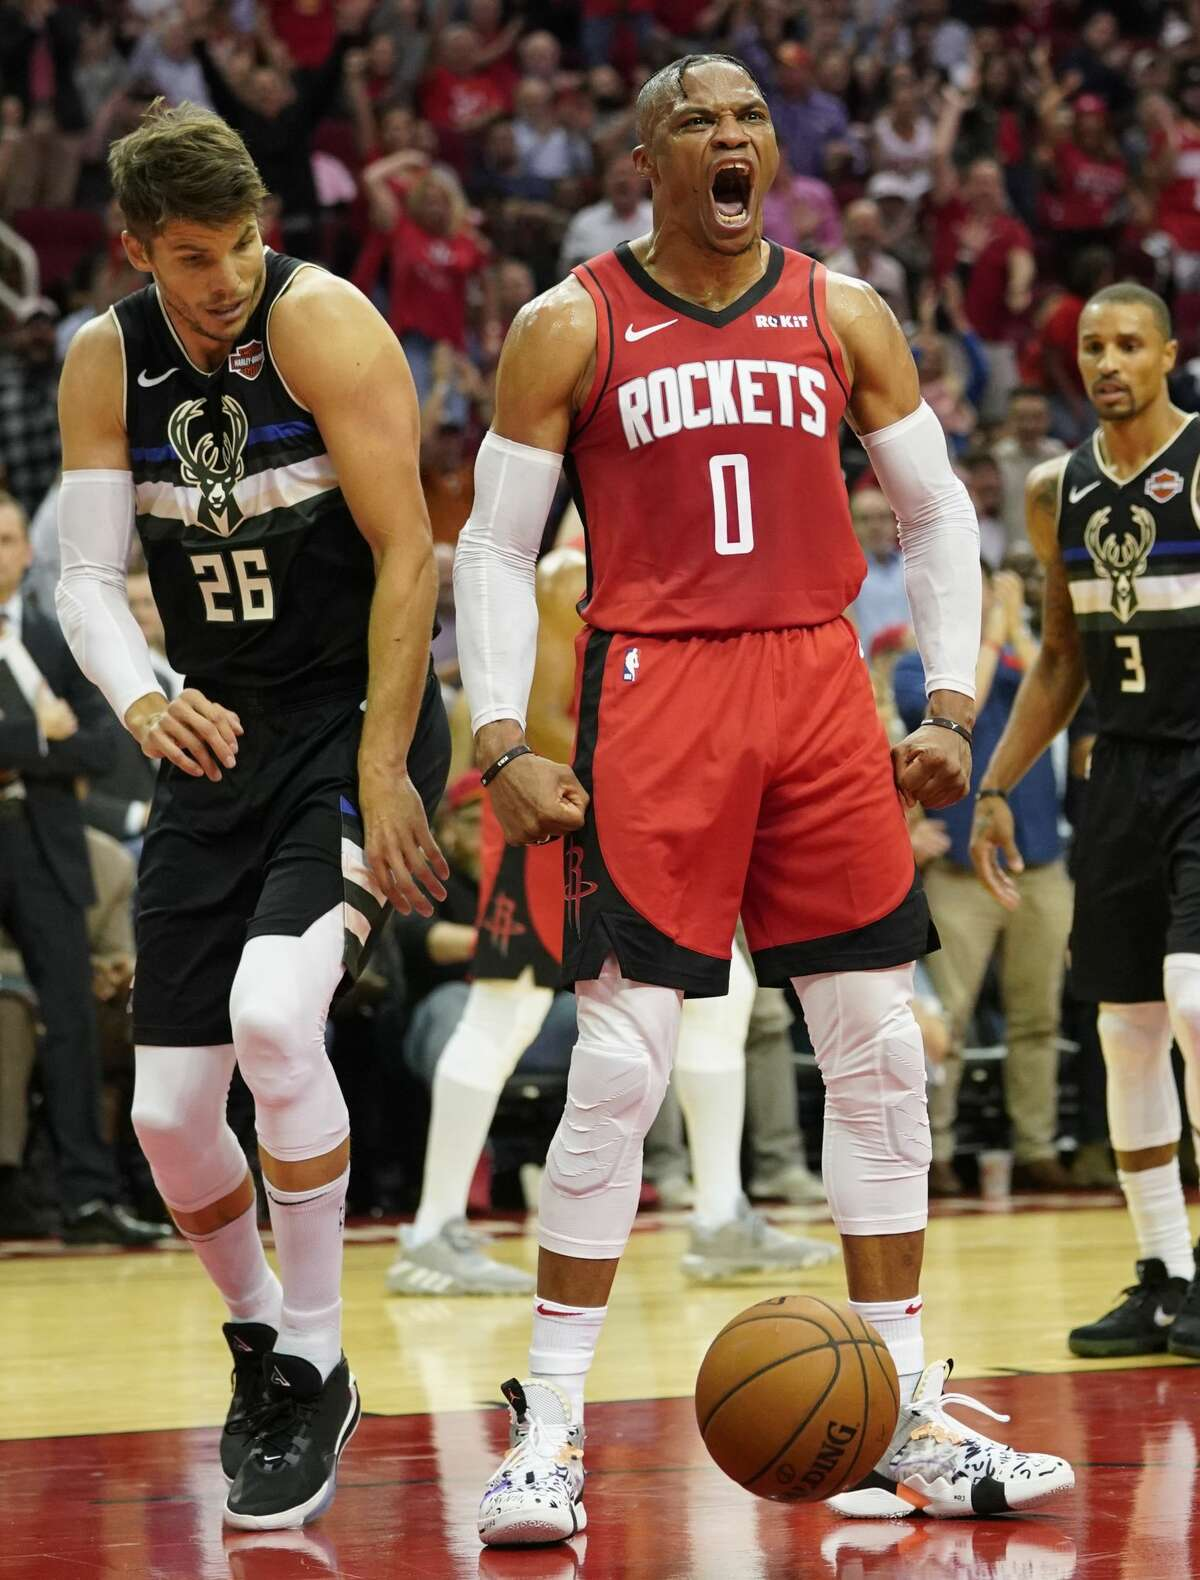 Oct. 24: Bucks 117, Rockets 111 Point leaders Rockets: Russell Westbrook (24) Bucks: Giannis Antetokounmpo (30) Record: 0-1